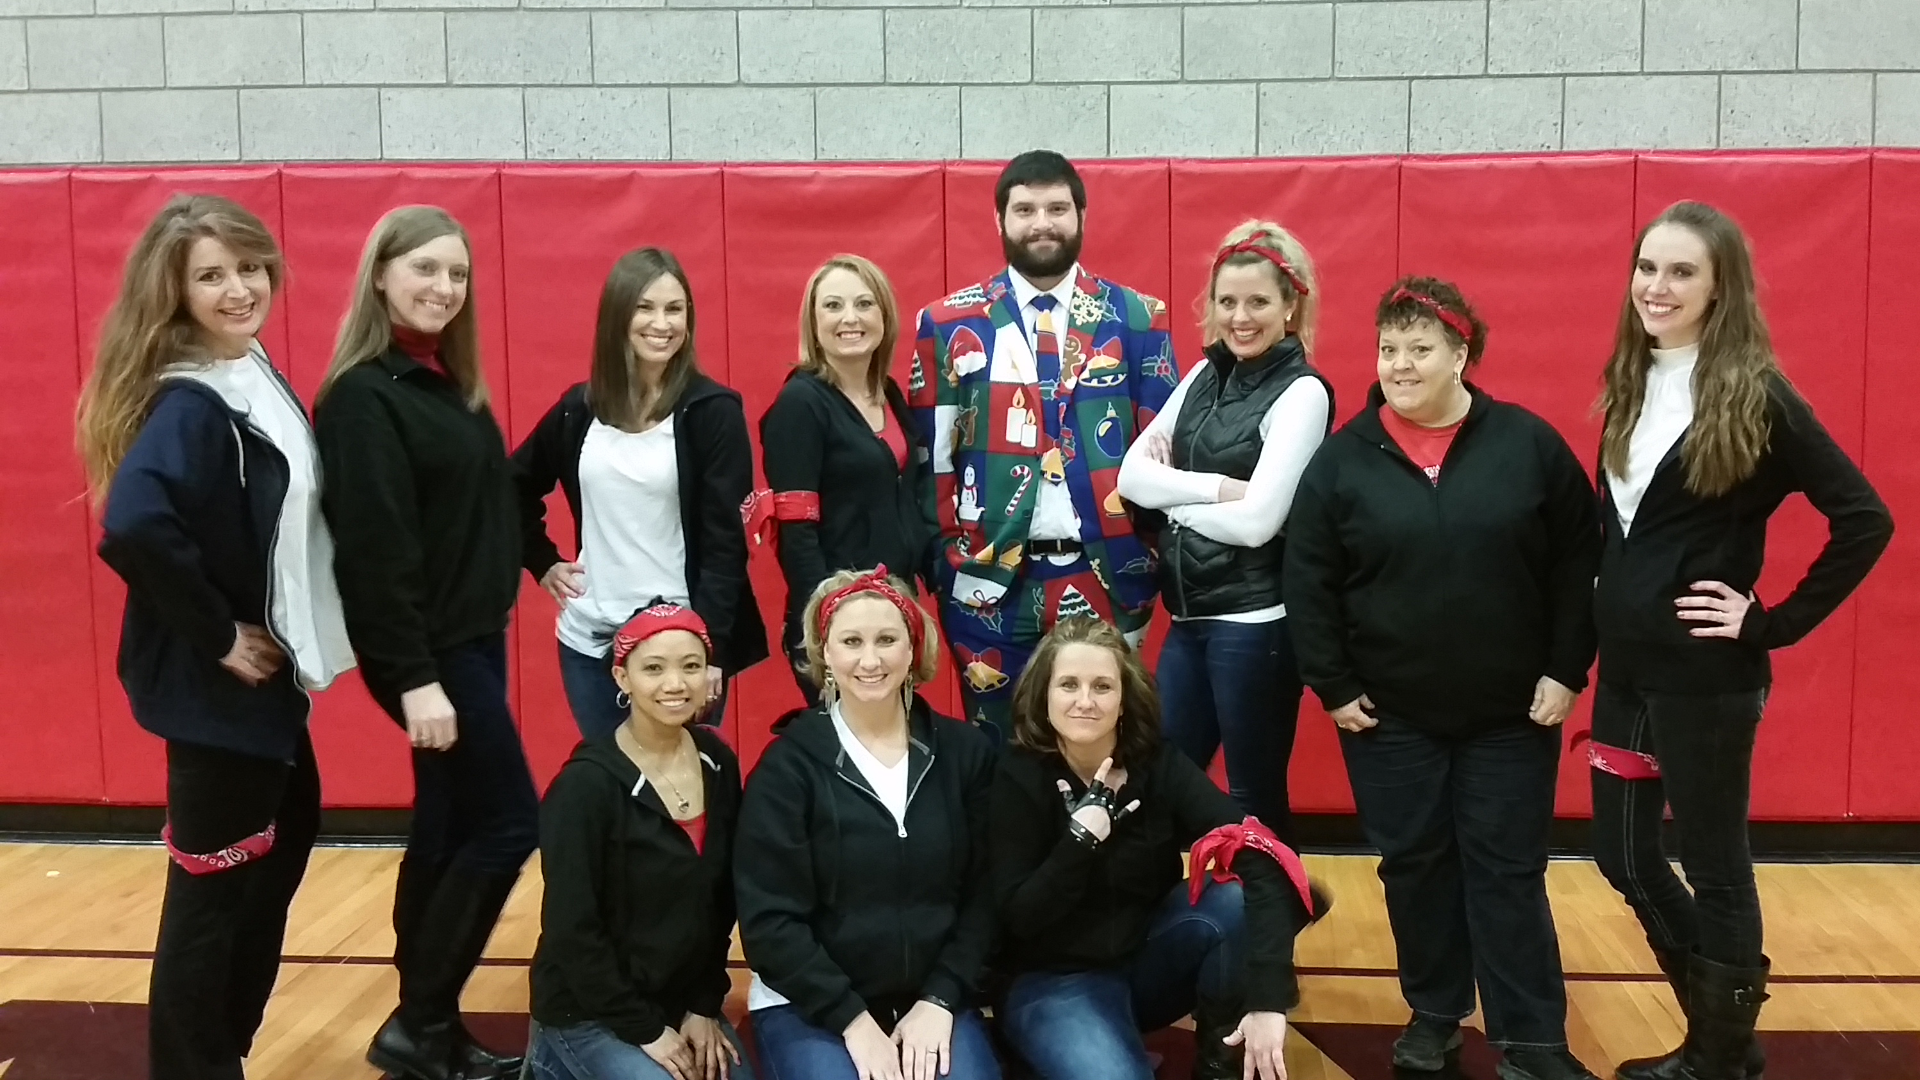 Mrs.Brake, Mrs.Dotson, Mrs.Young, Mrs.Ward, Mr.Thompson, Mrs.Conley, Mrs.Jervis, Mrs.Pridemore, Mrs.Grant, Mrs.Stephens, and Mrs.Sparks posing together in the gym.